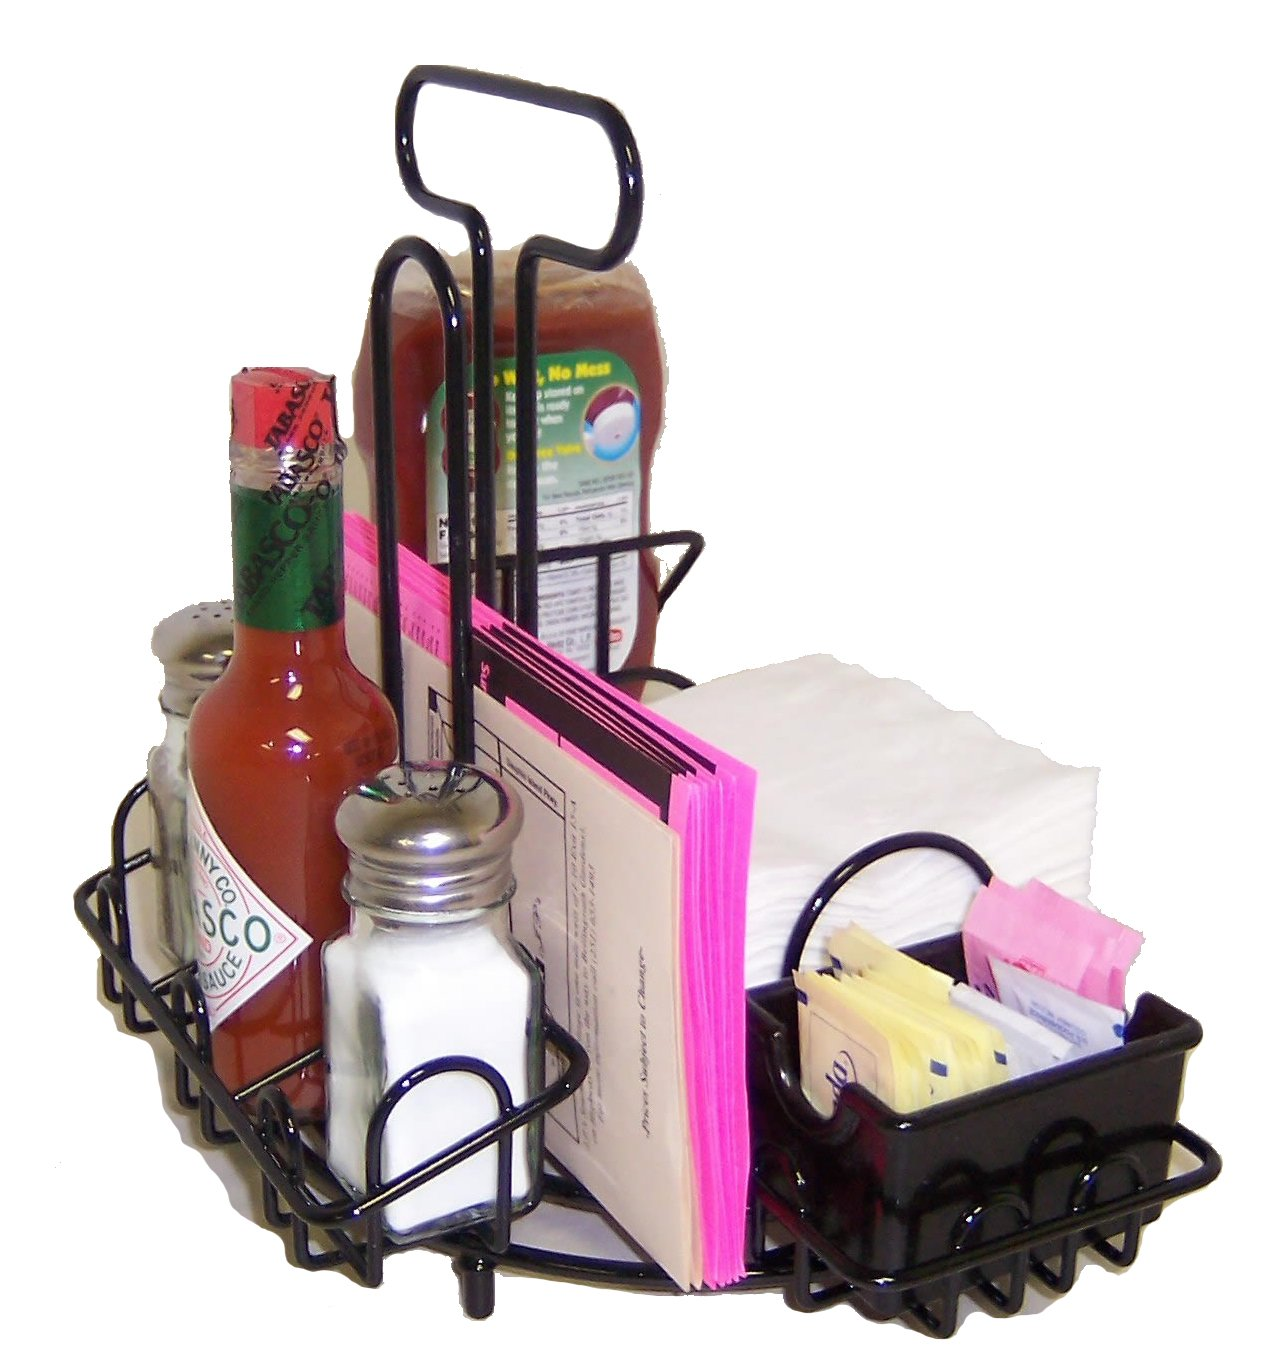 MACH-2 • Case of 8 • Commercial Restaurant Menu & Condiments Holder/Caddie FOR SQUARE NAPKINS - Thick Industrial Wire - Powdercoated Black Finish. Last forever! Type MenuCoverMan in Amazon search.